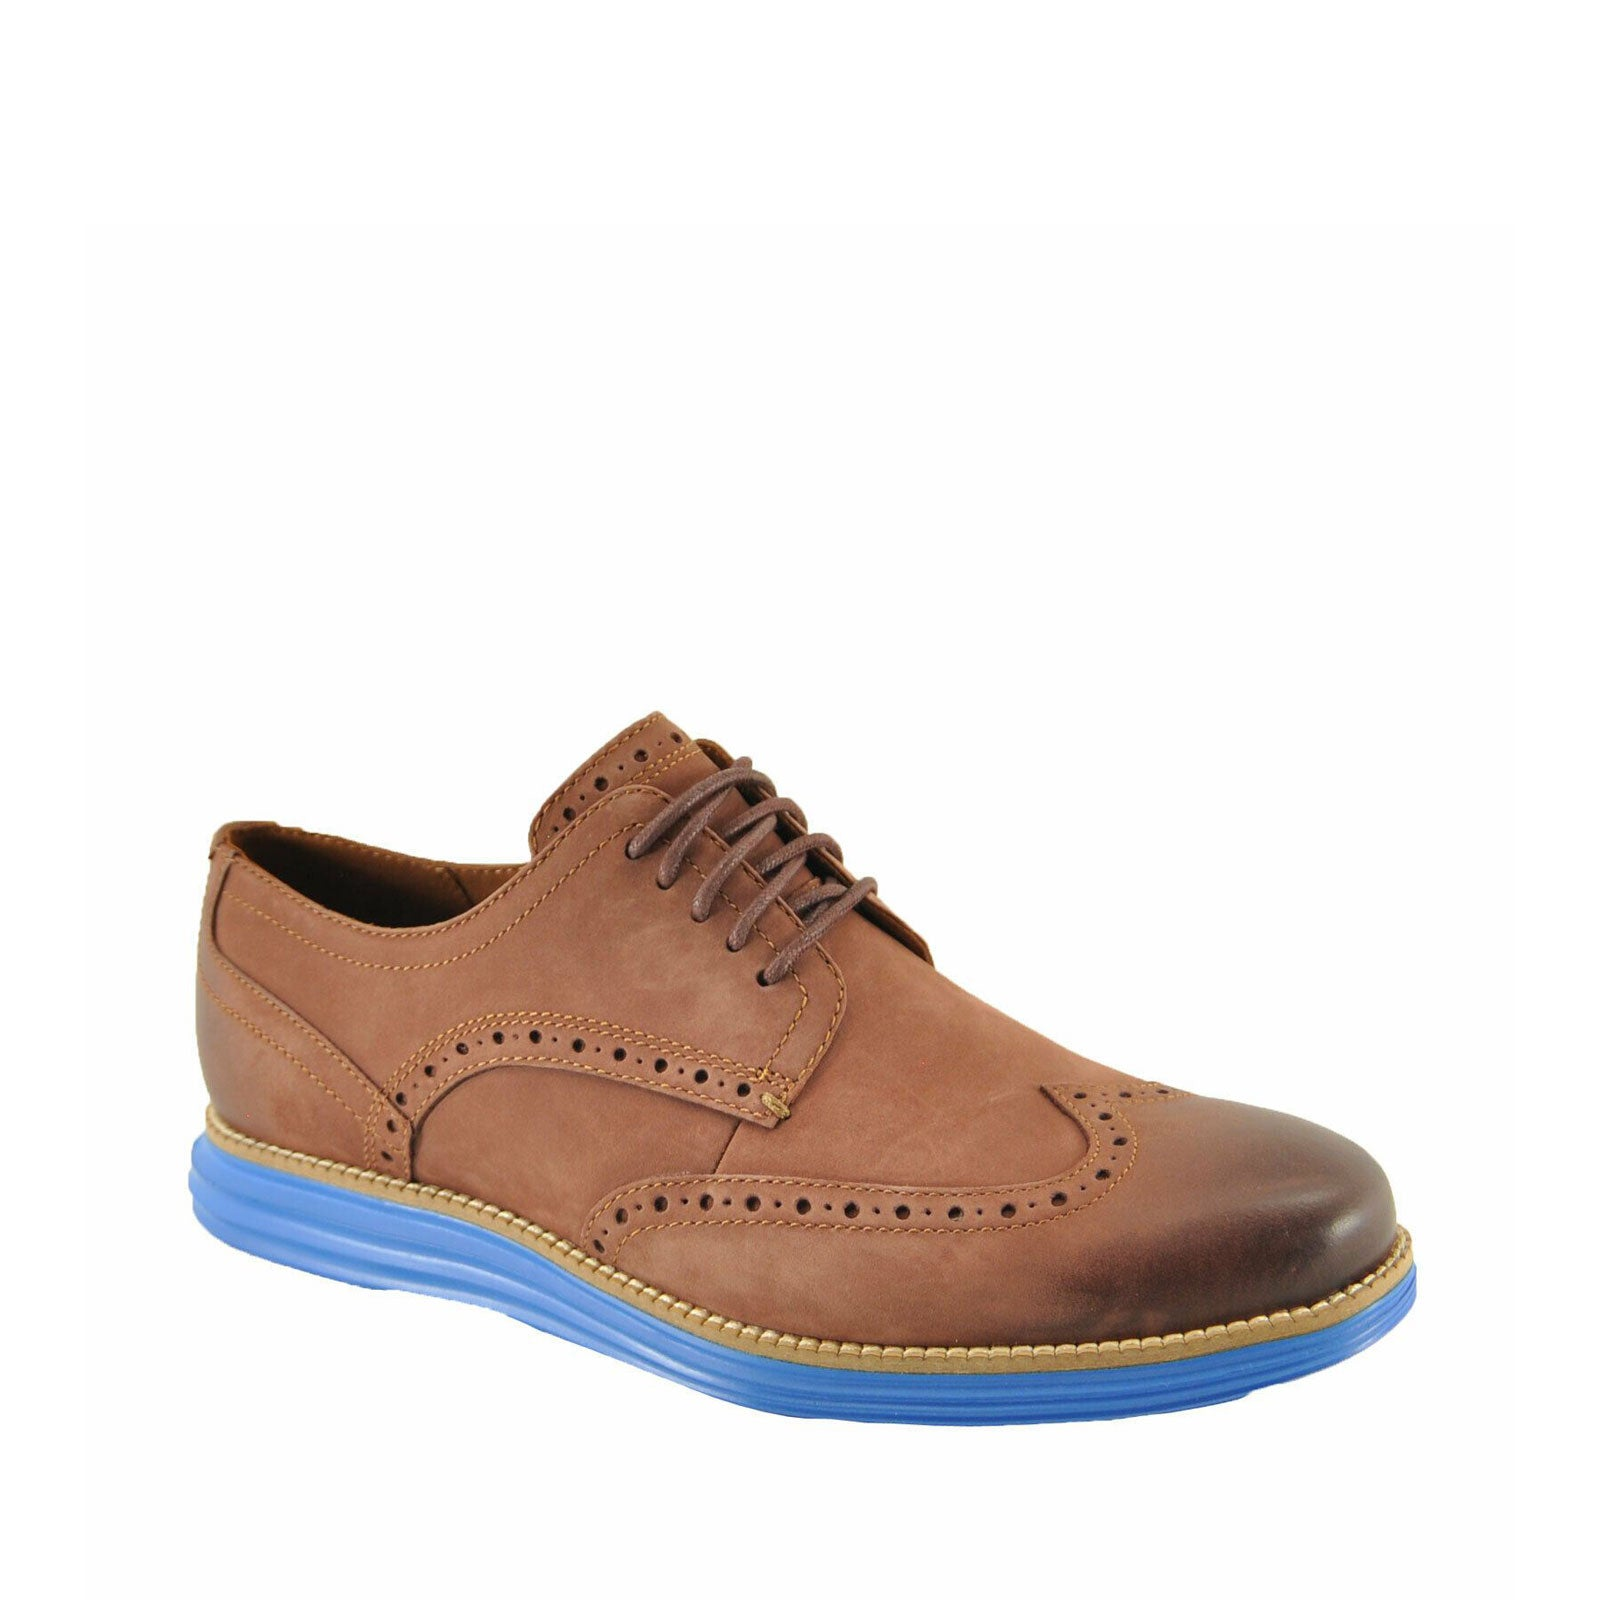 Cole Haan Original Grand Wingtip Oxford- Chestnut